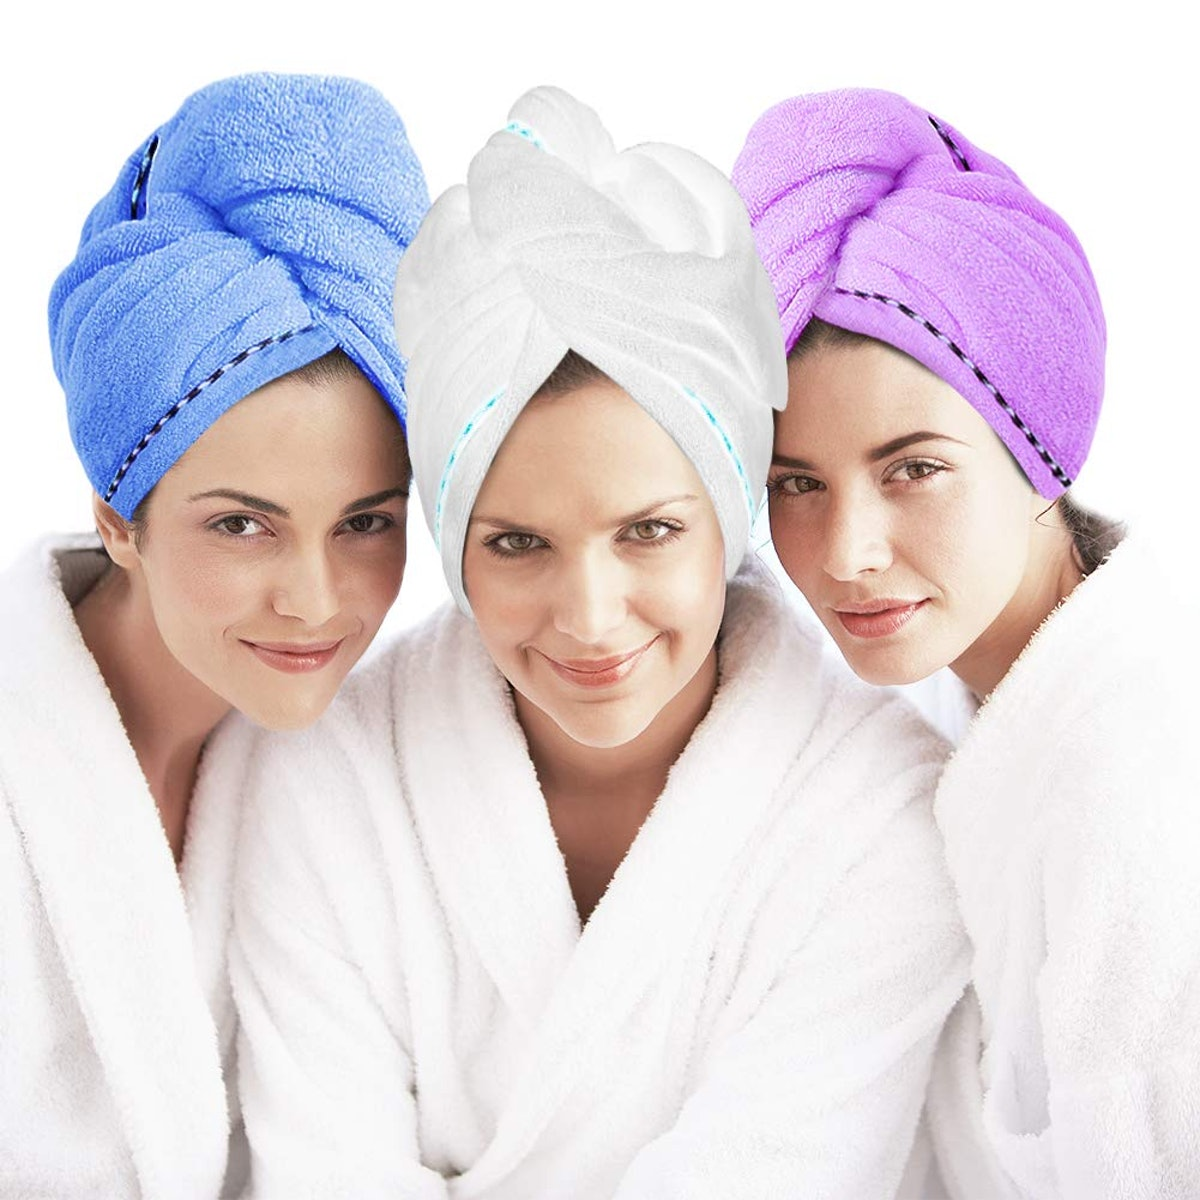 Laluztop Anti-Frizz Absorbent Hair Towel